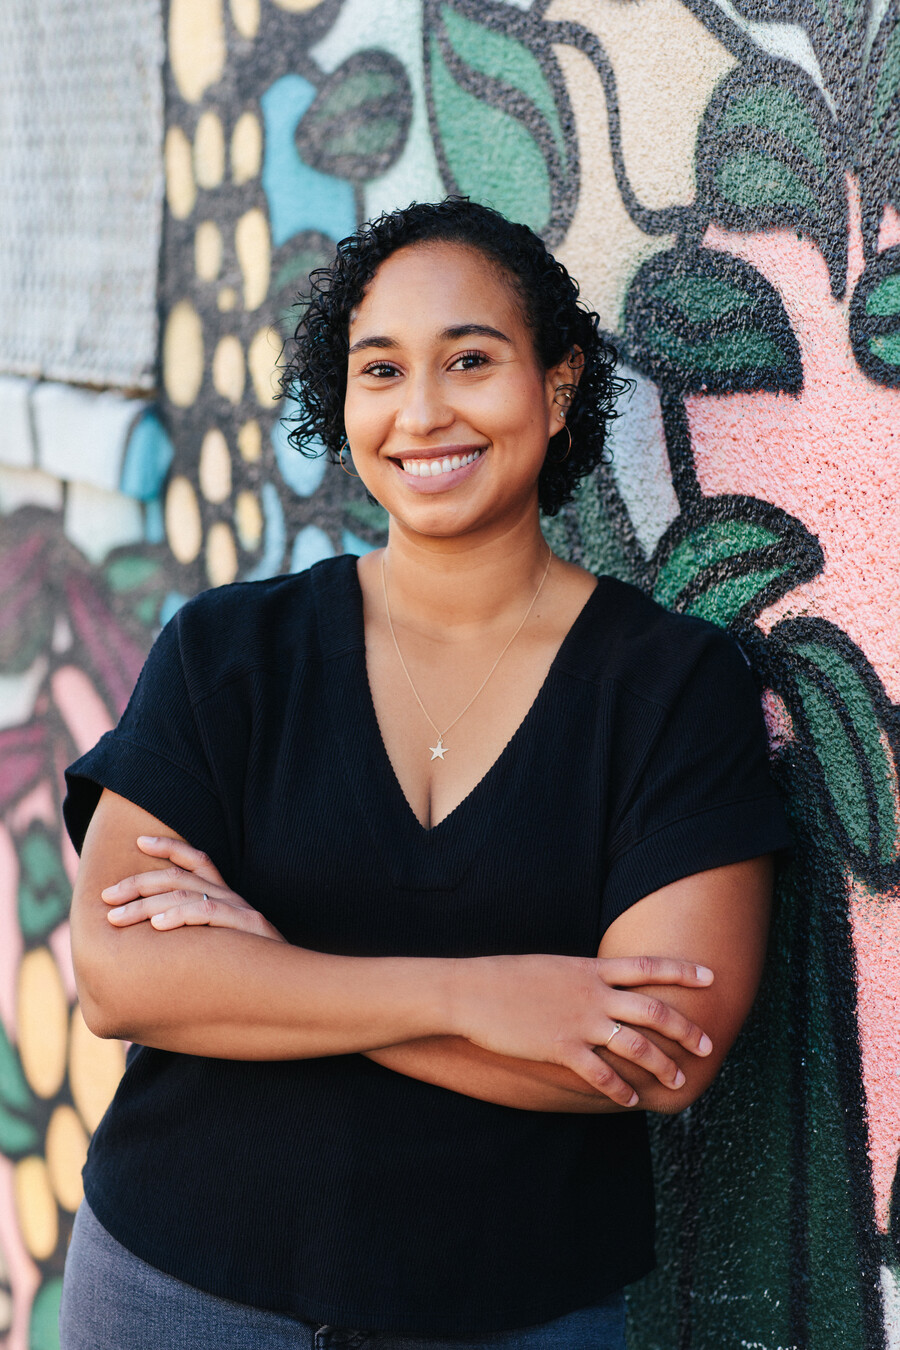 Naima Coster, a light-skinned woman with short, black hair, and wearing a black t-shirt crosses her arms and smiles as she poses against a colorful wall